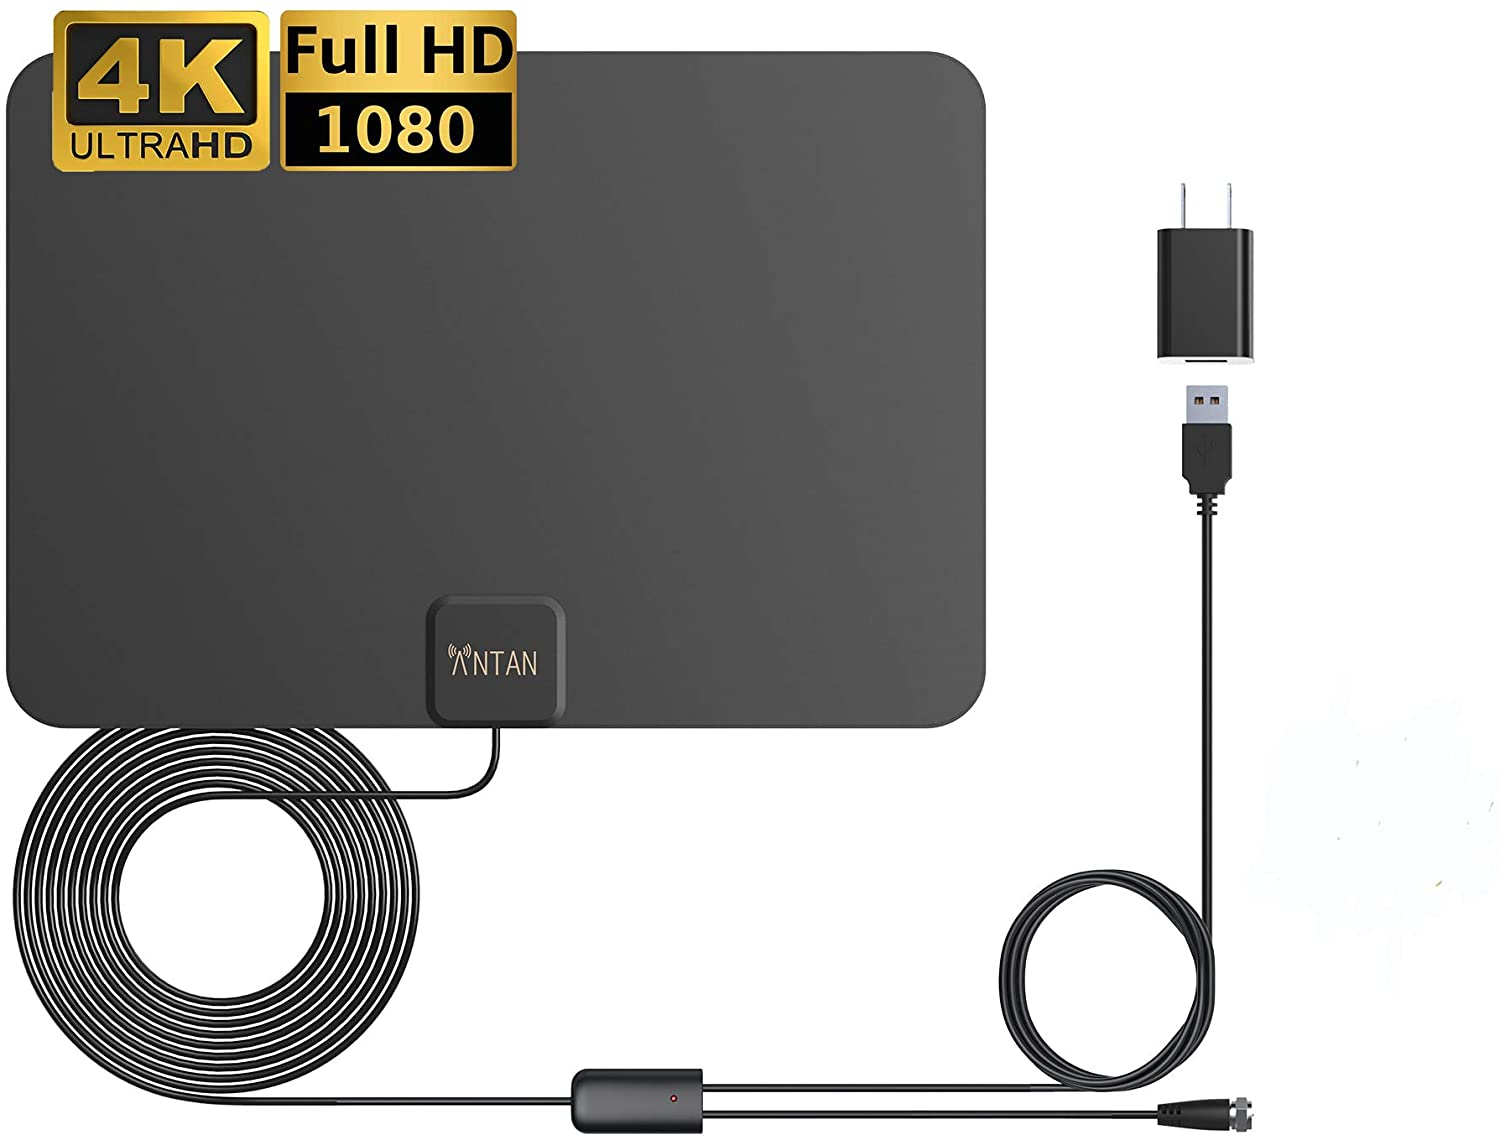 ANTAN Indoor Amplified HD TV Antenna, 65-Mile Range